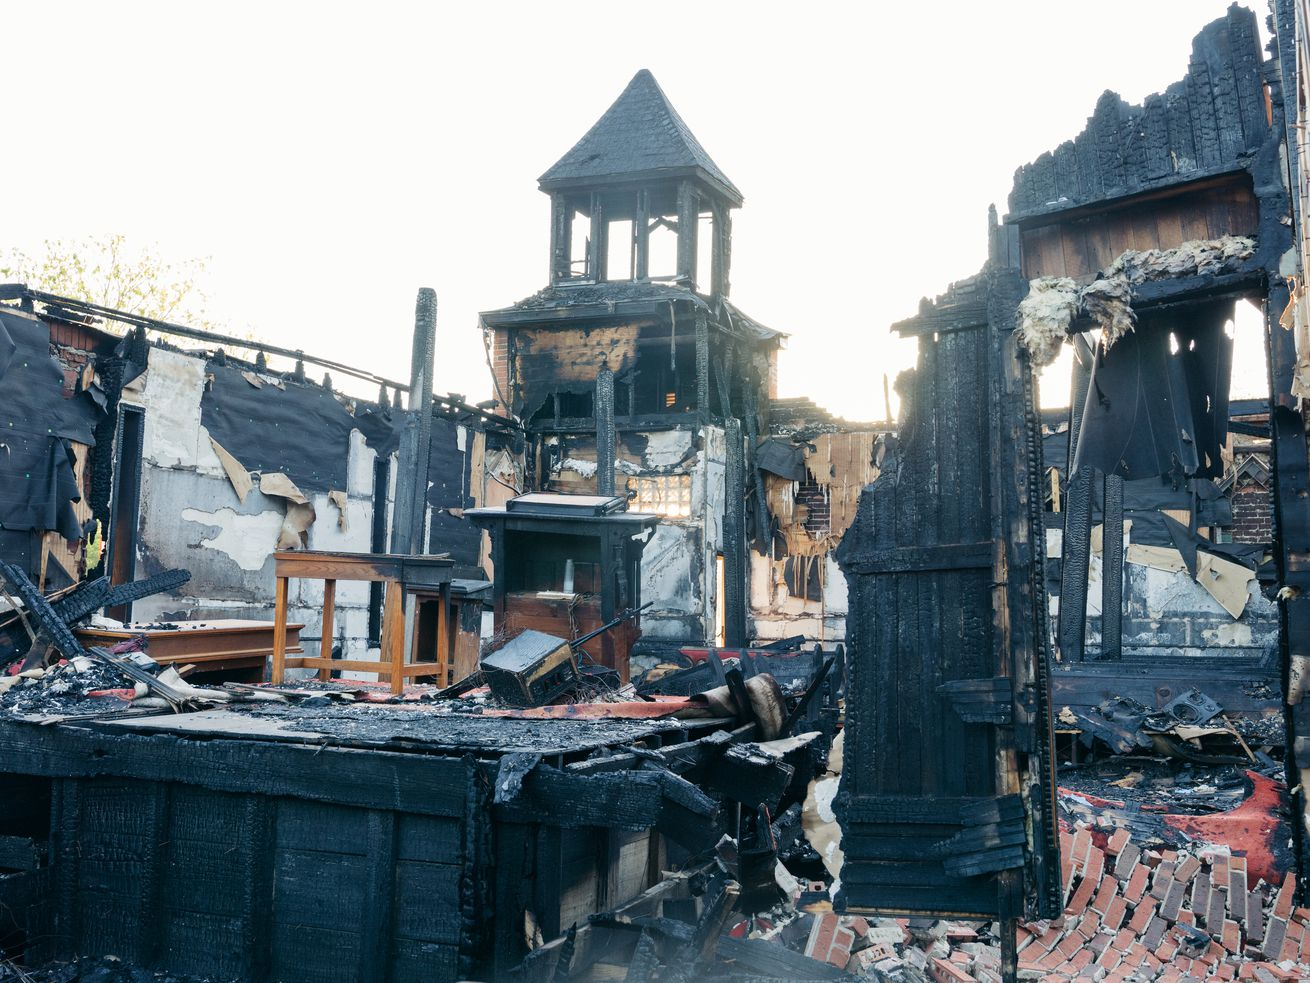 Mount Pleasant Baptist Church was one of three historically black churches burned down over a 10-day period in Louisiana. The man accused of setting fire to the church now faces state and federal hate crimes charges.